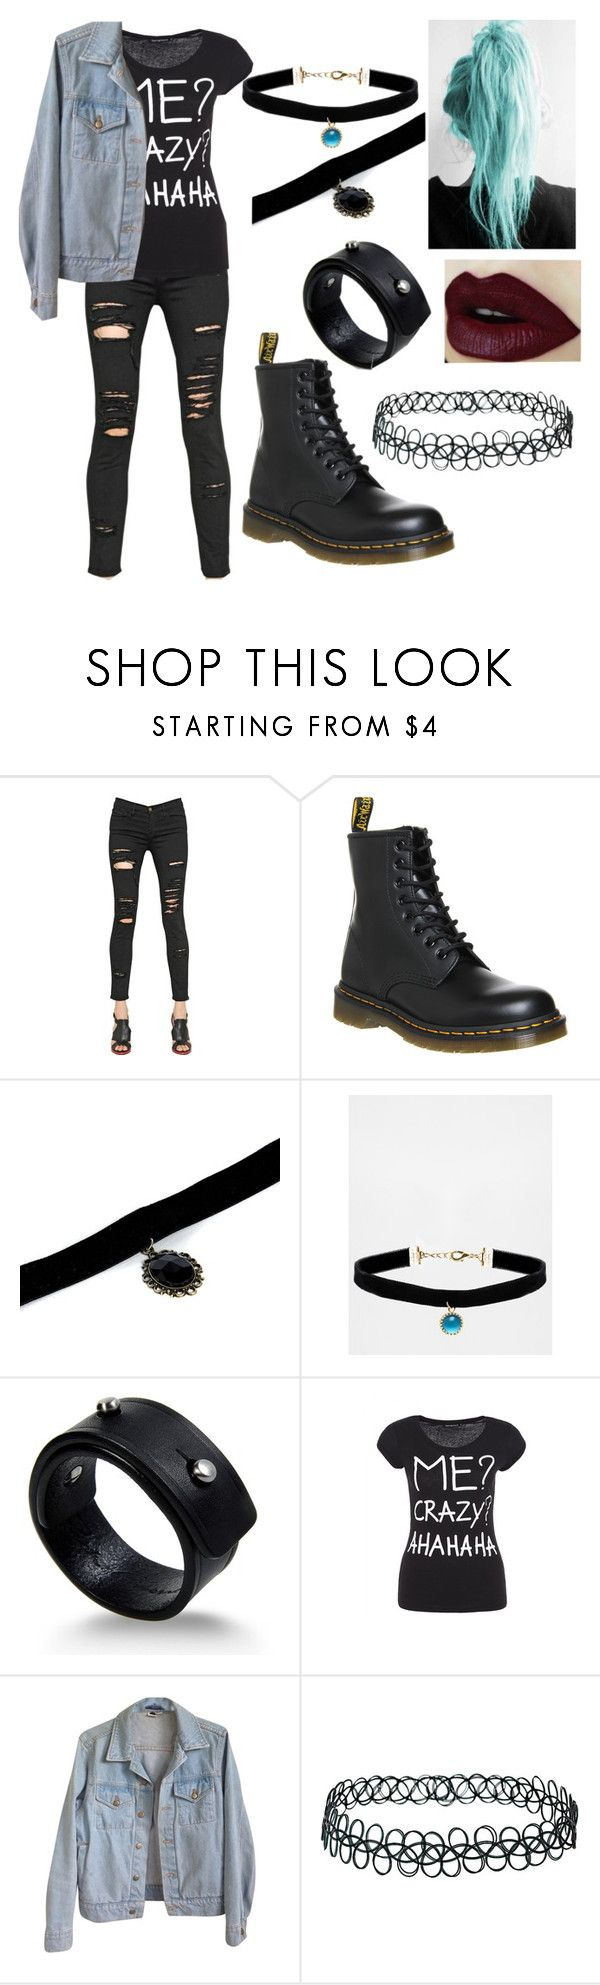 """""""Grunge style"""" by maggiesoutfit ❤ liked on Polyvore featuring Frame, Dr. Martens, Boohoo, Rock 'N Rose, Rick Owens, American Apparel and Topshop"""